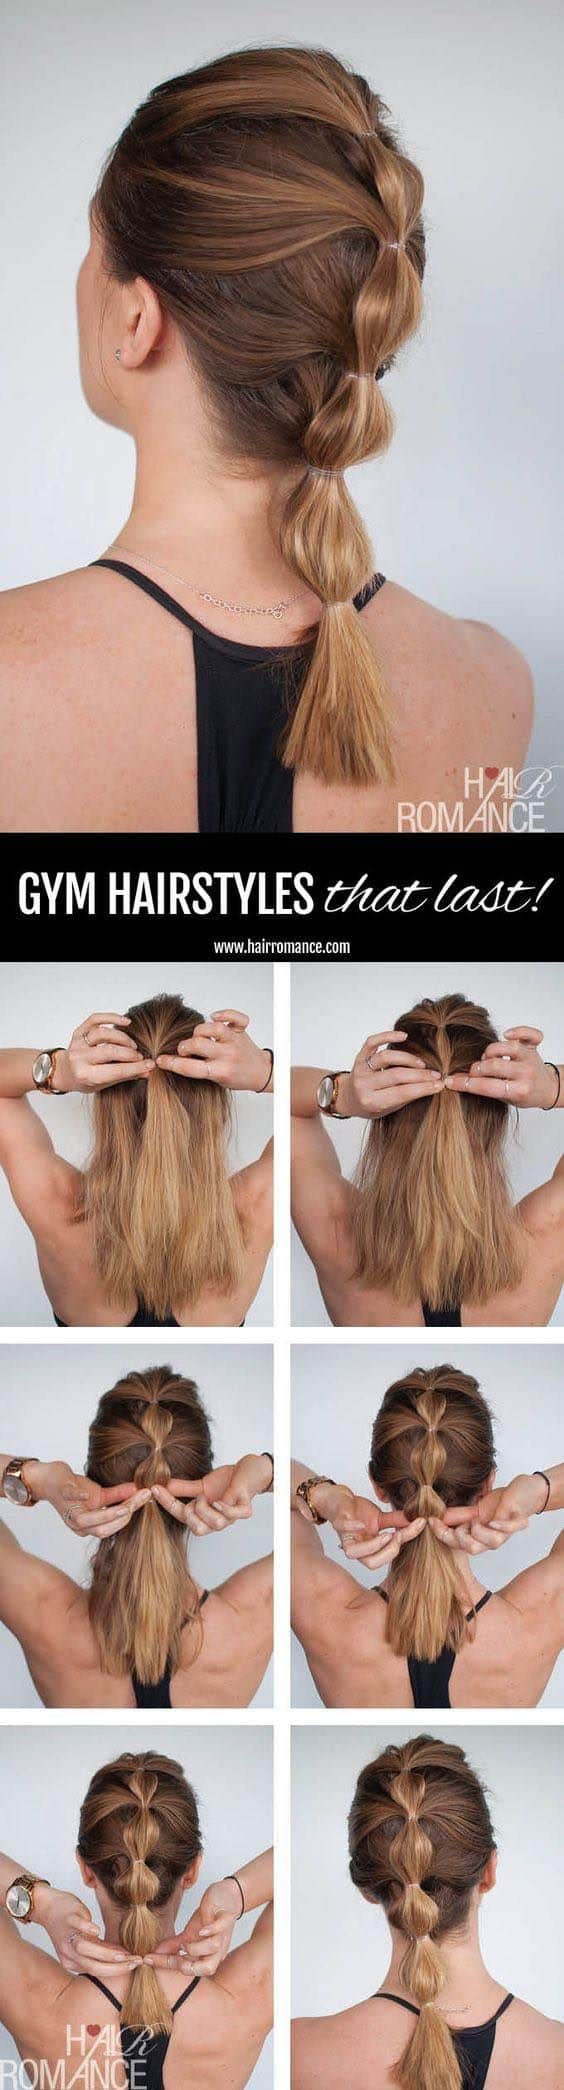 20 perfect swimming hairstyles - girl loves glam